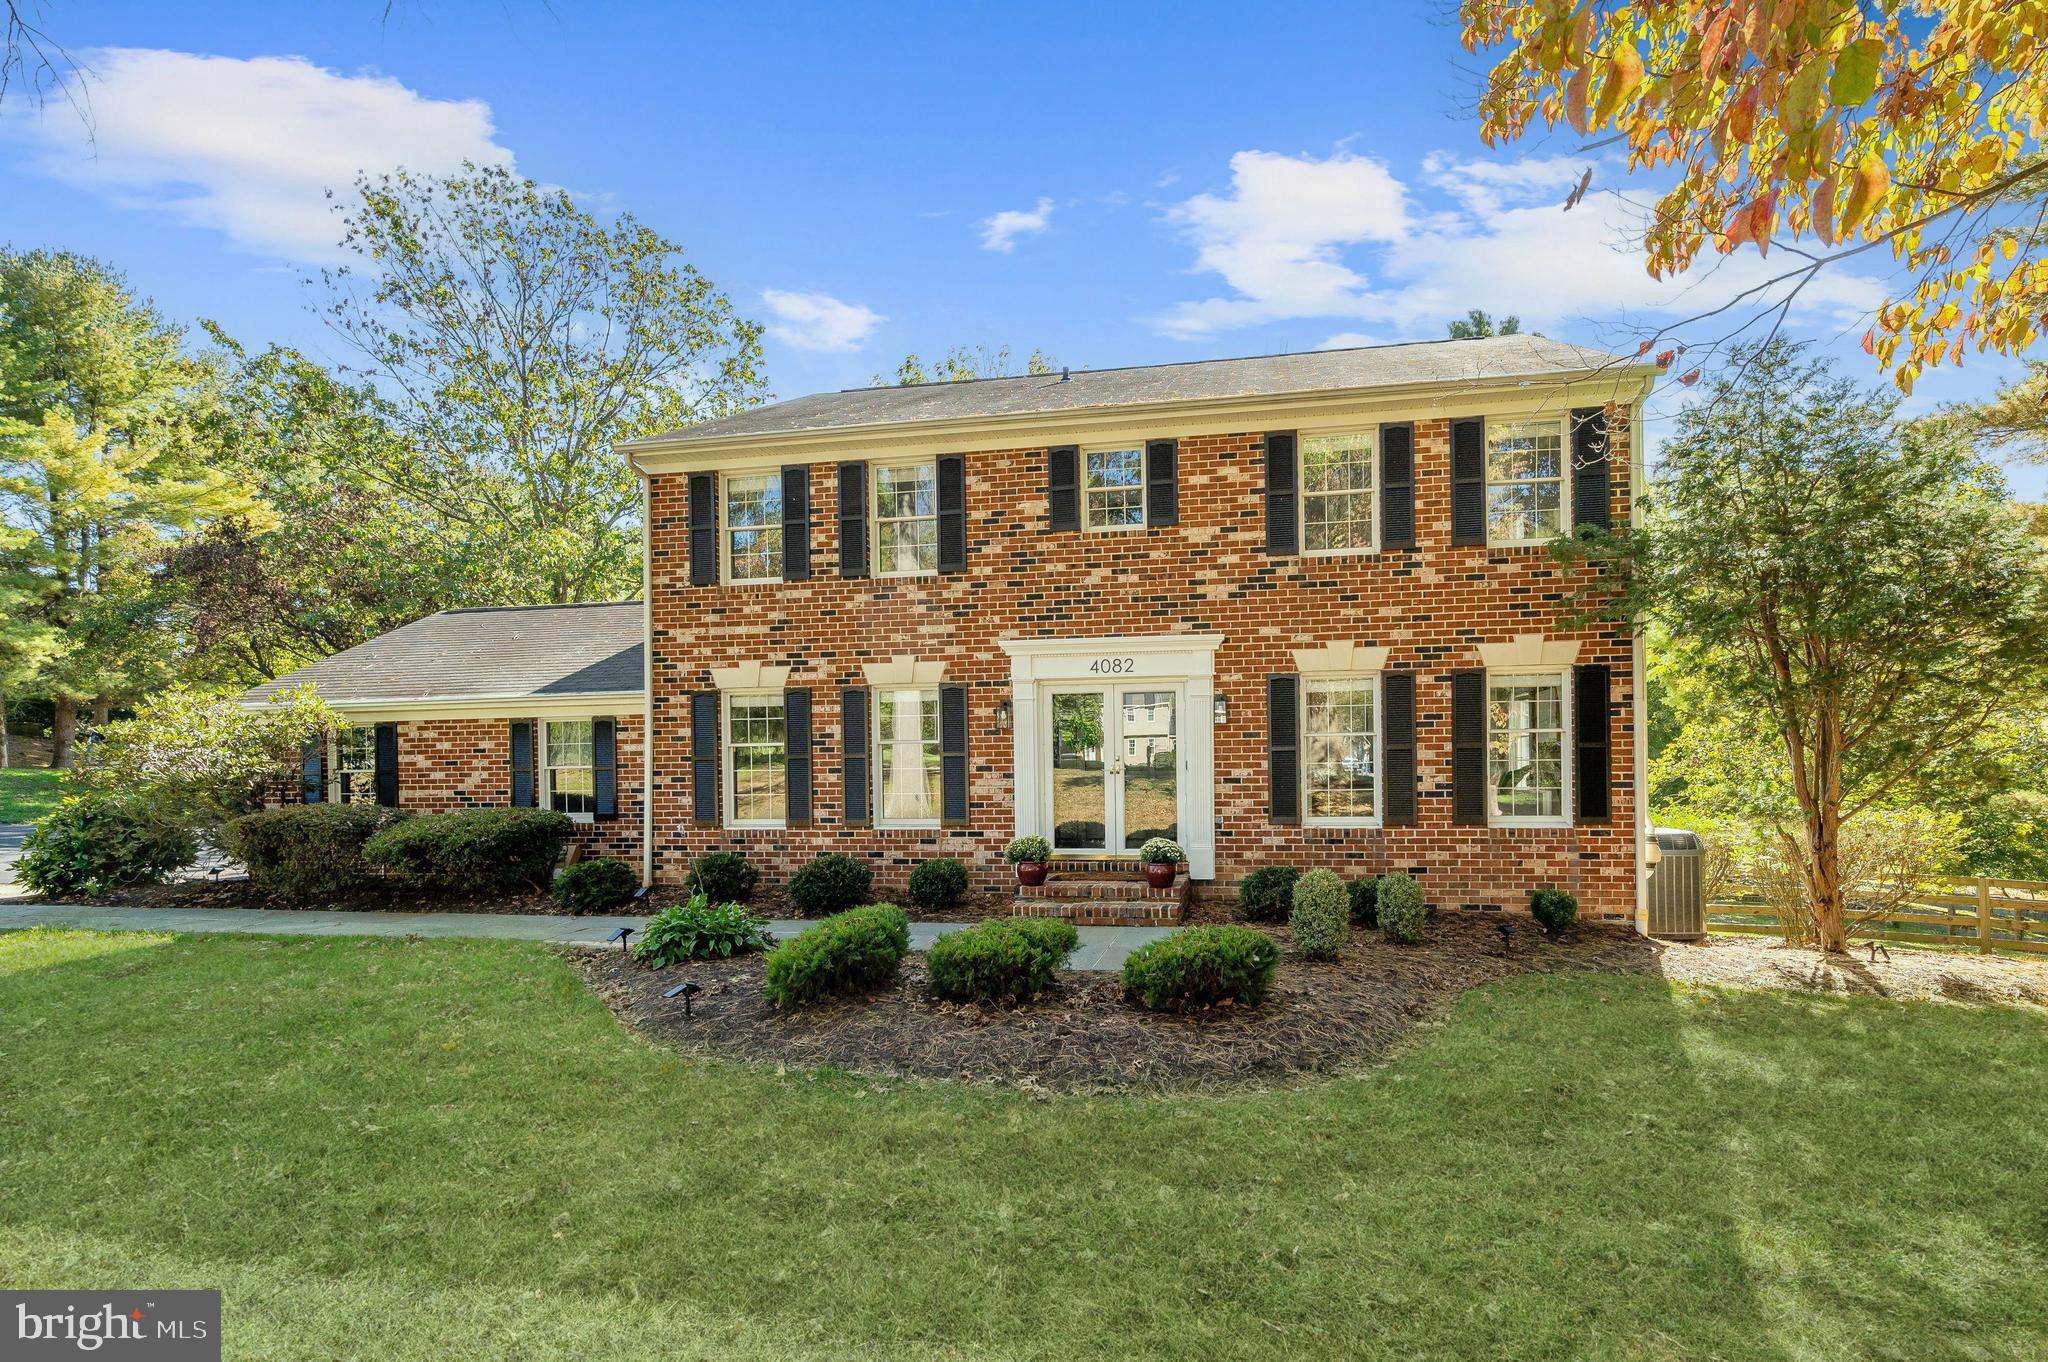 Beautiful colonial home in sought after location. This home offers 4 bedrooms, 2.5 bathrooms and sit